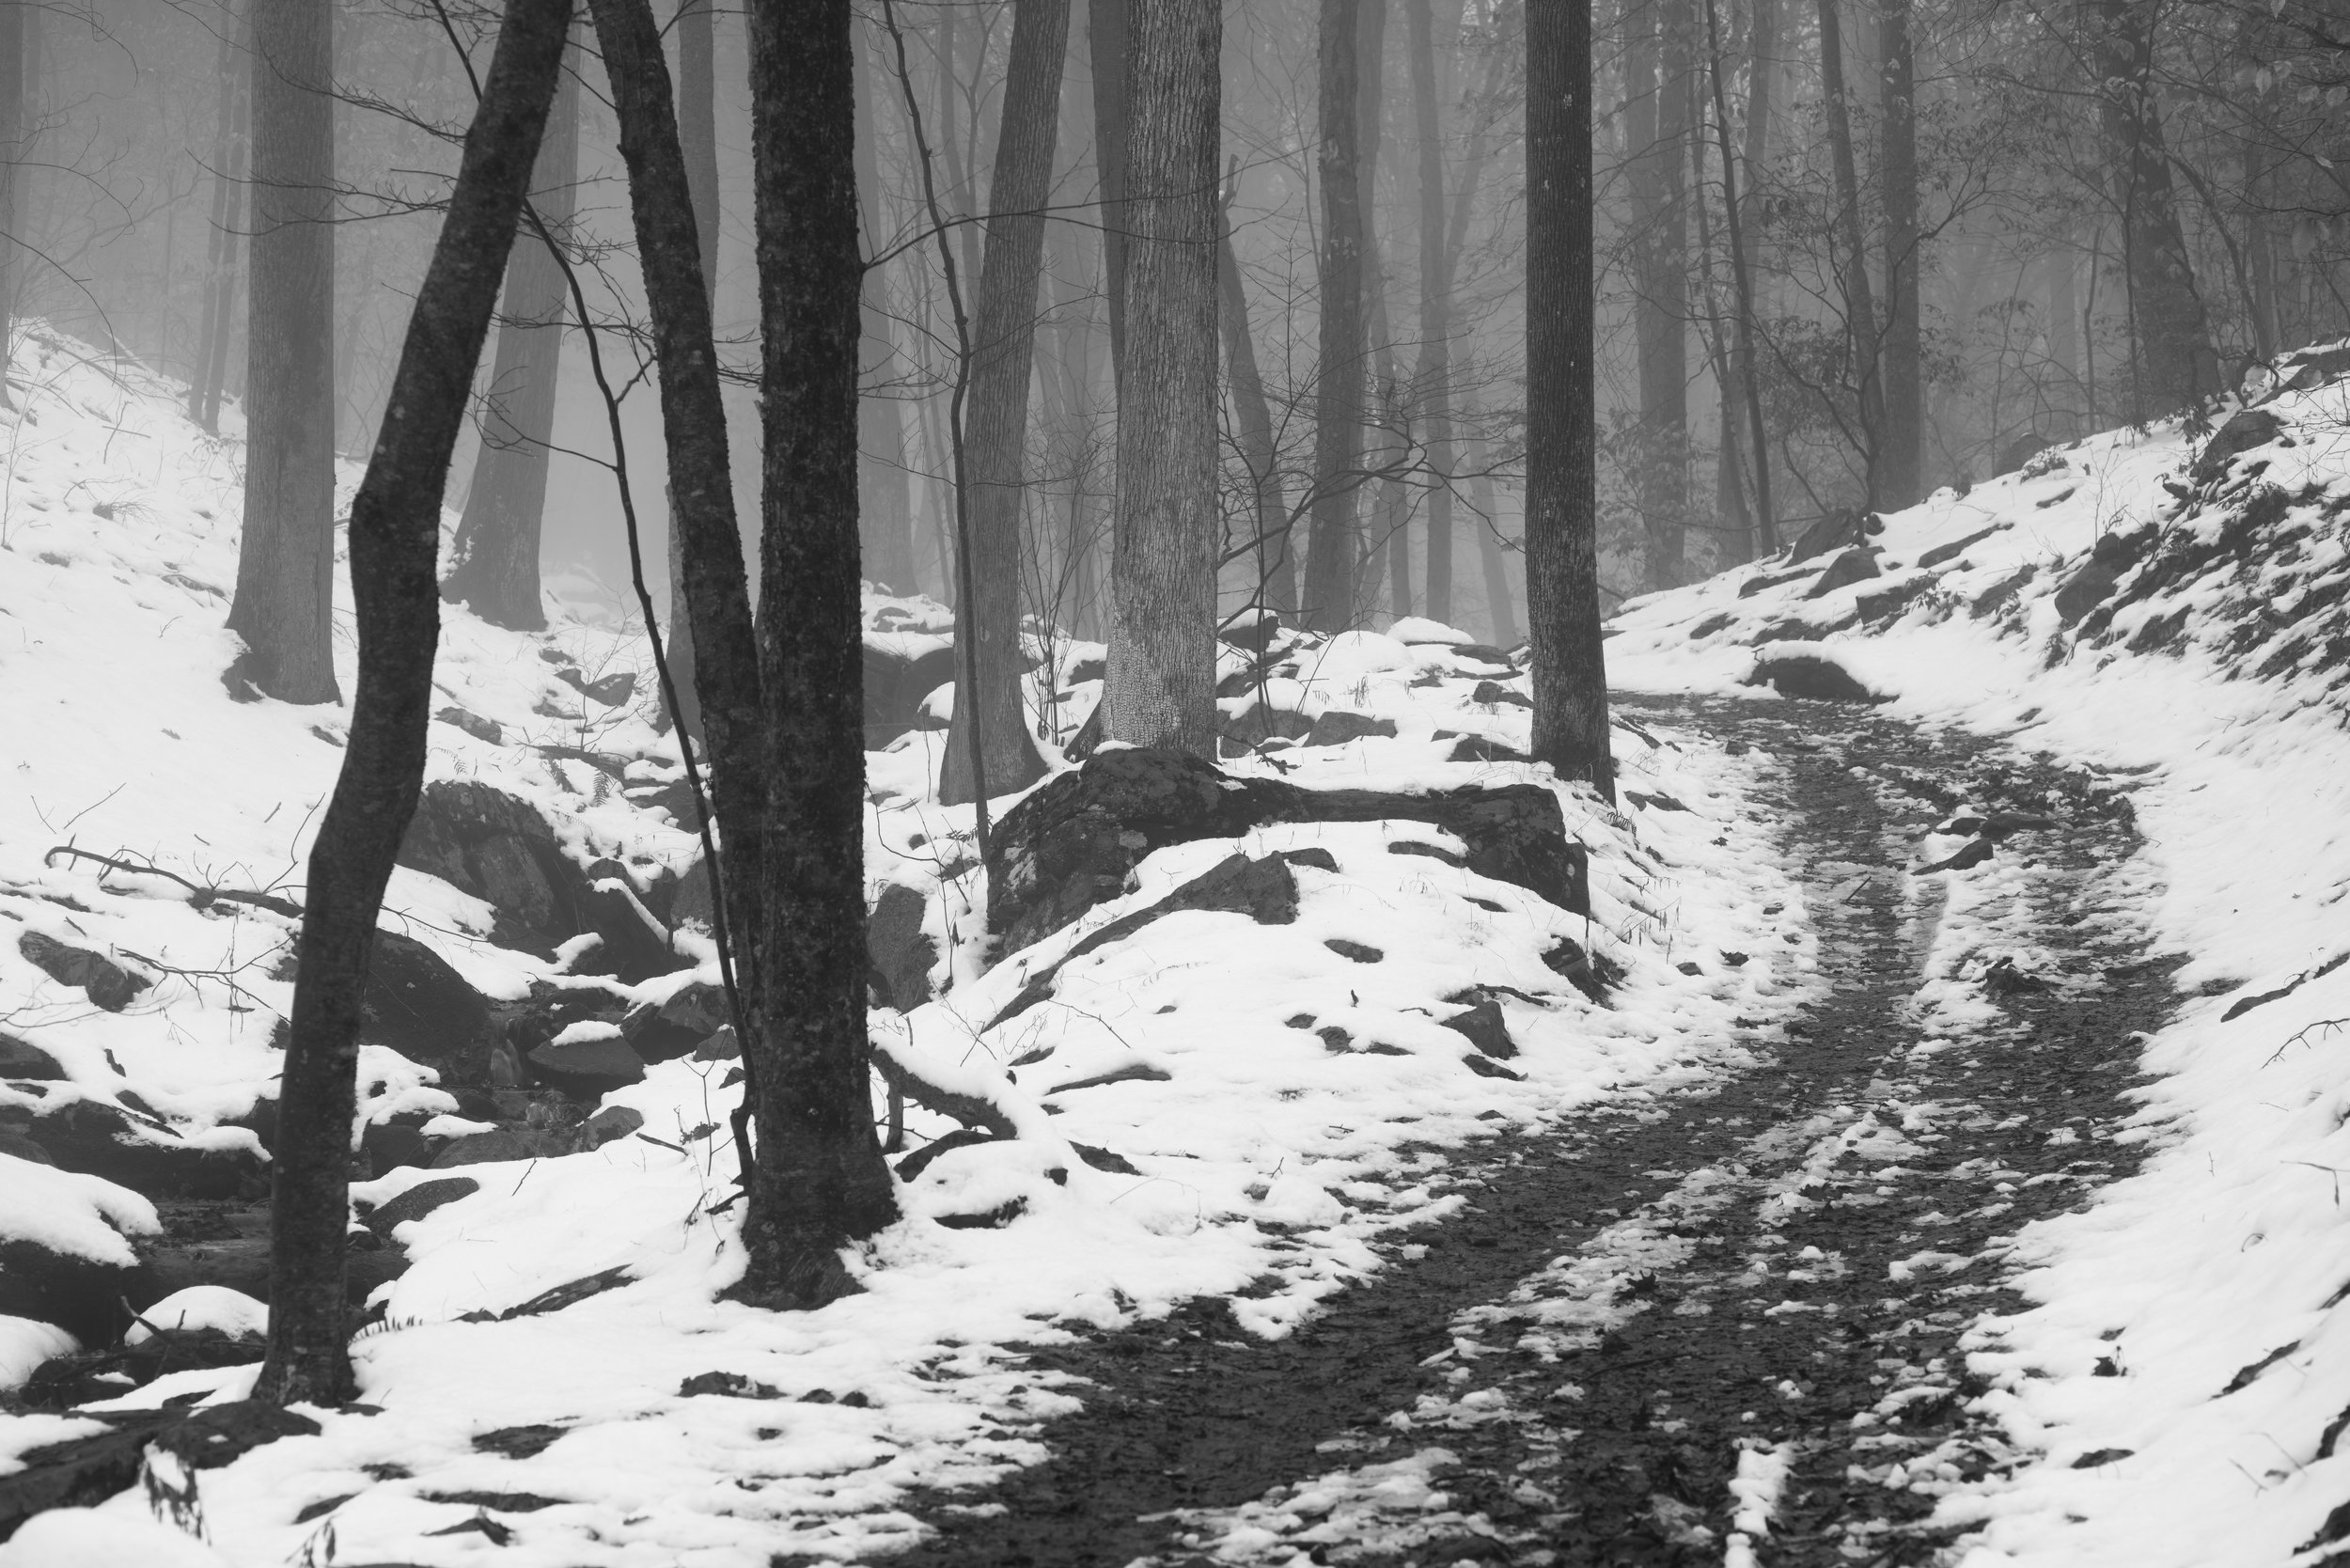 path_through_snow_fog.jpg